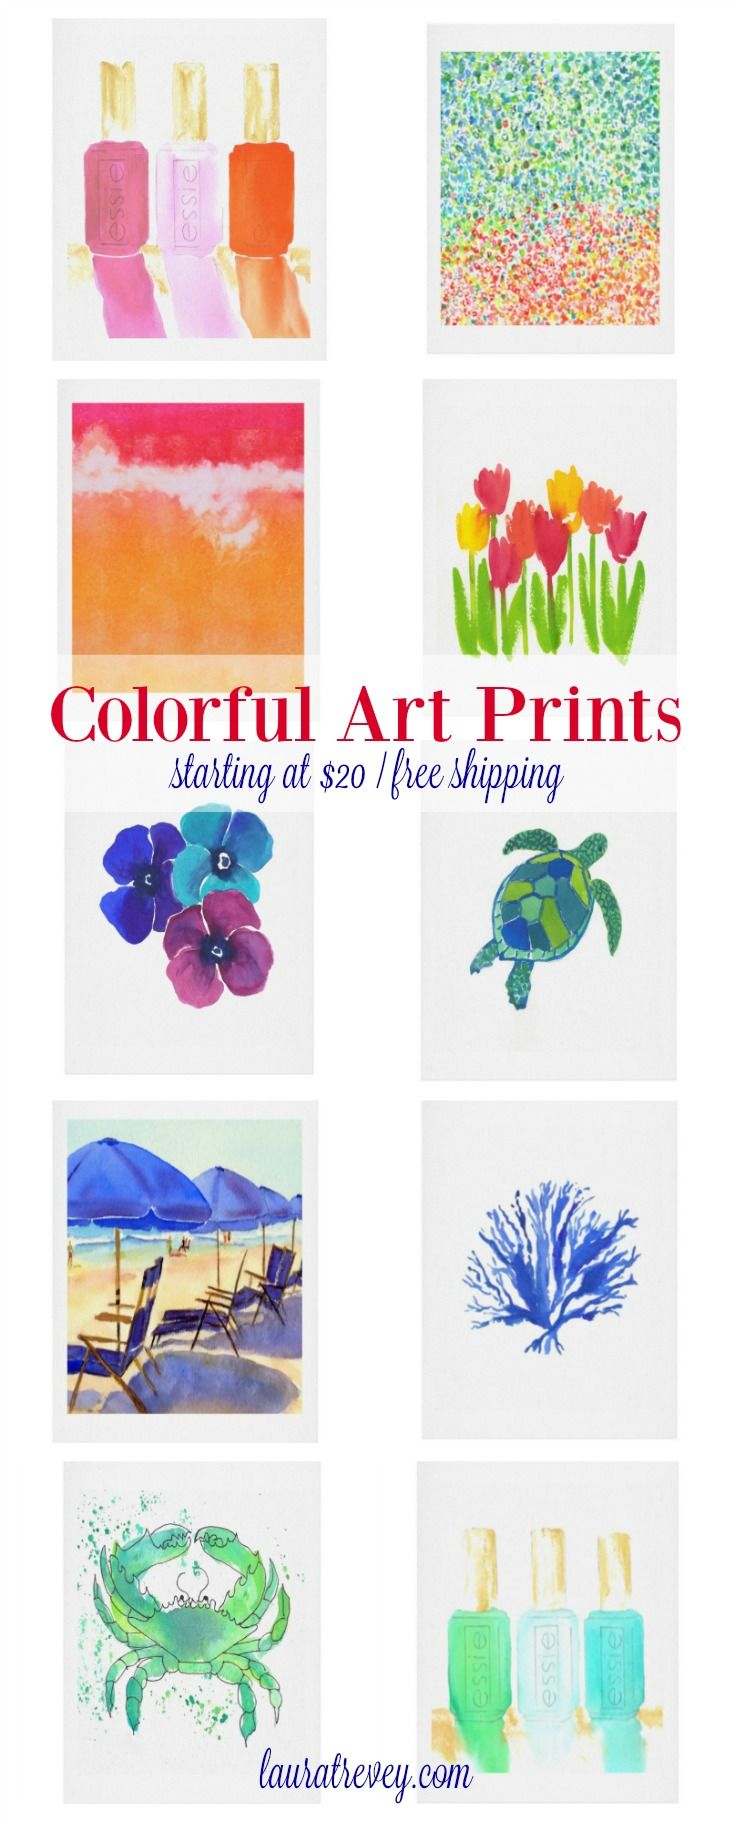 New! These colorful art prints are available in four standard sizes {8x10, 11x14, 16x20, 18x24} so they are super easy to frame. Build Your Gallery Wall.